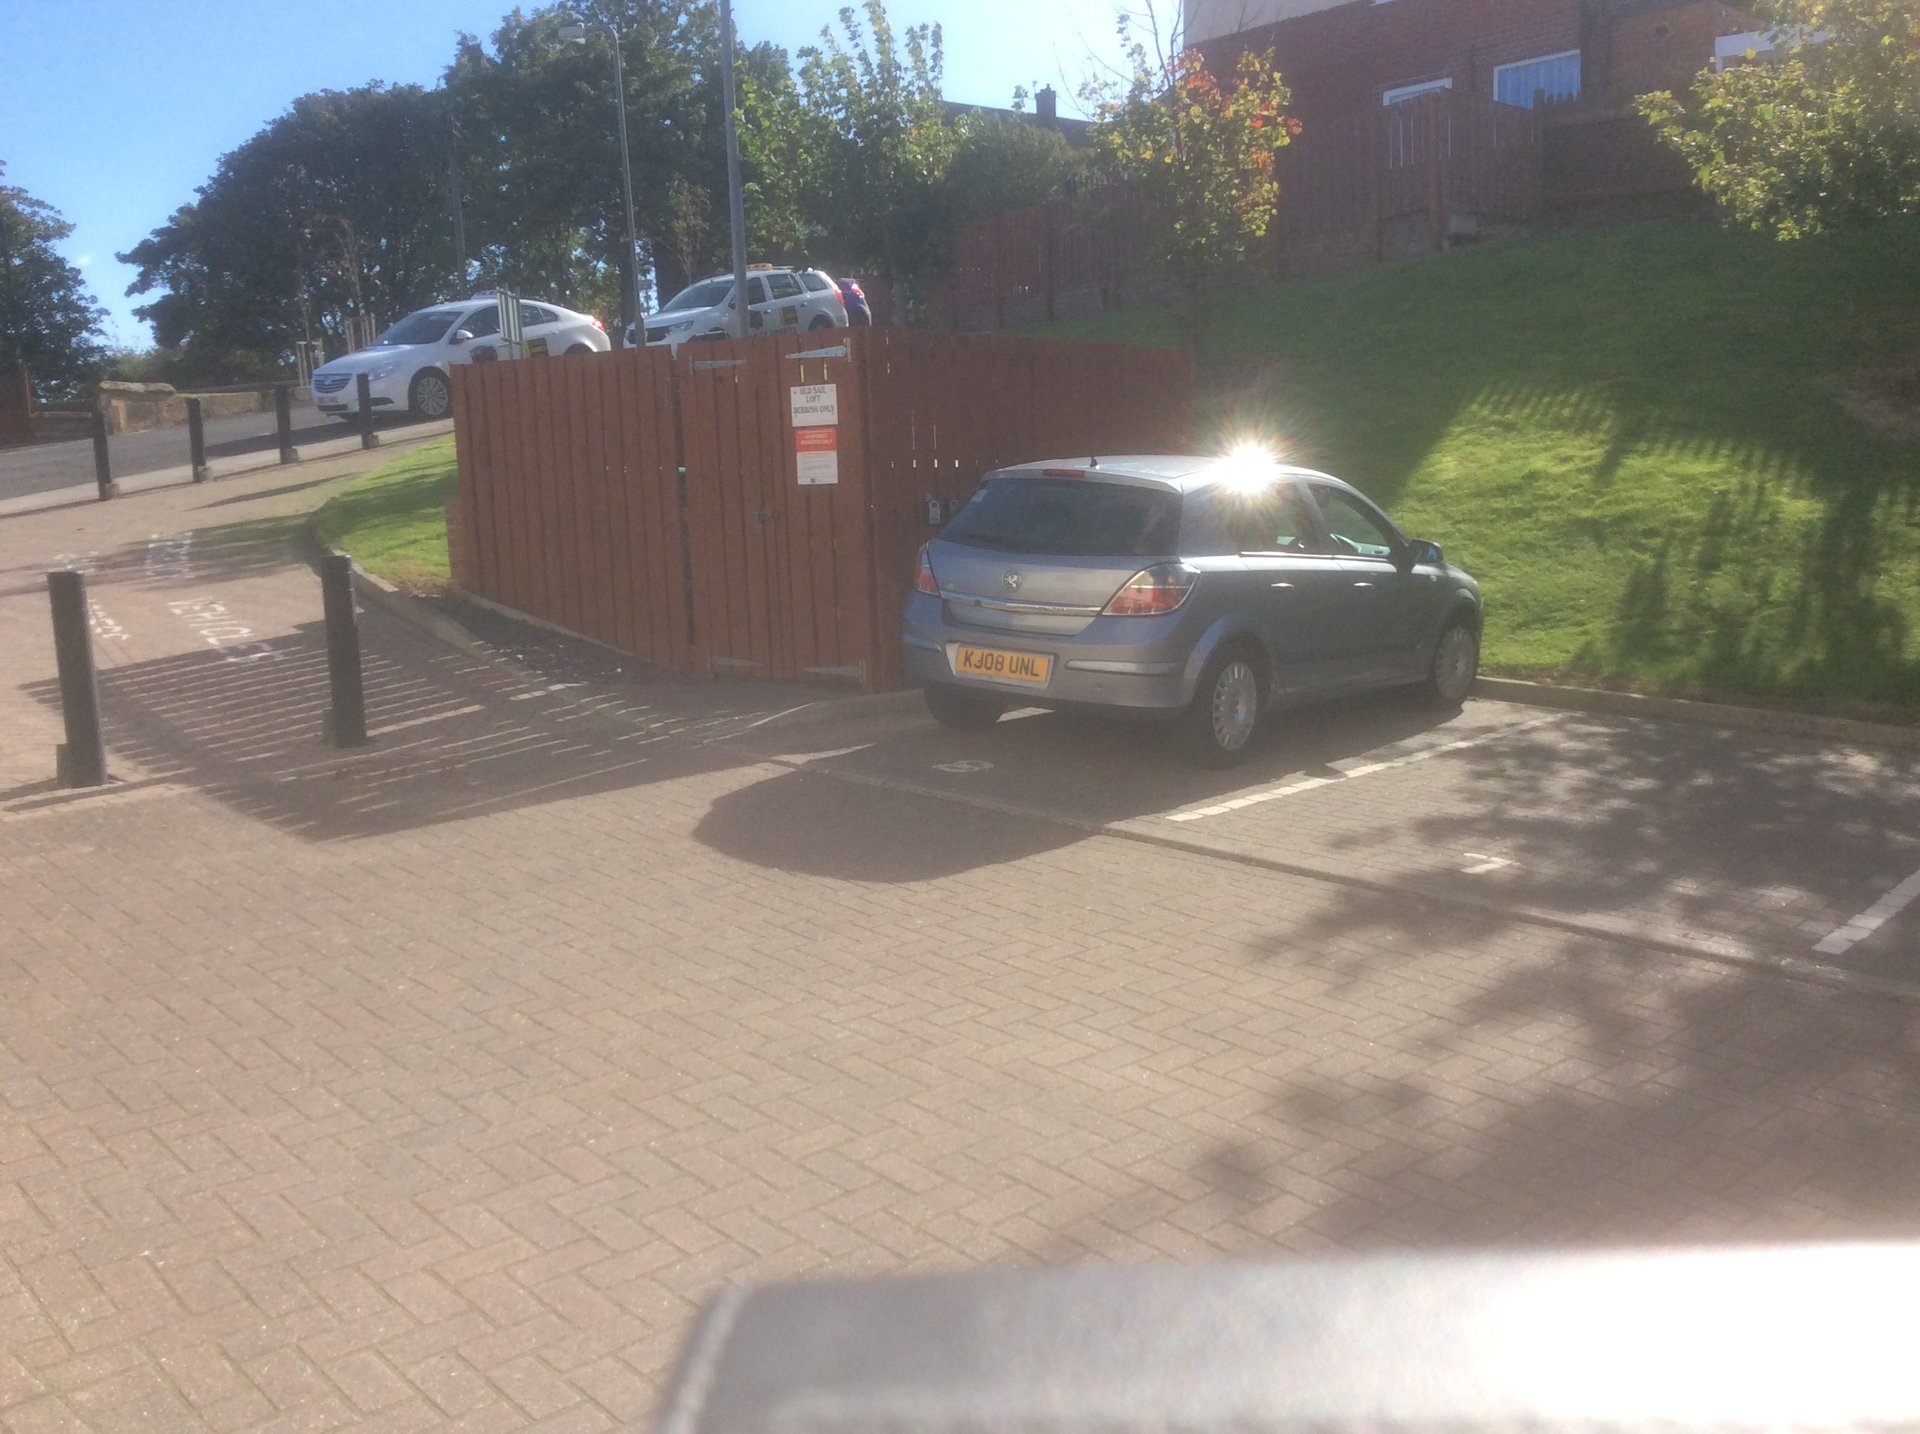 image of the carpark